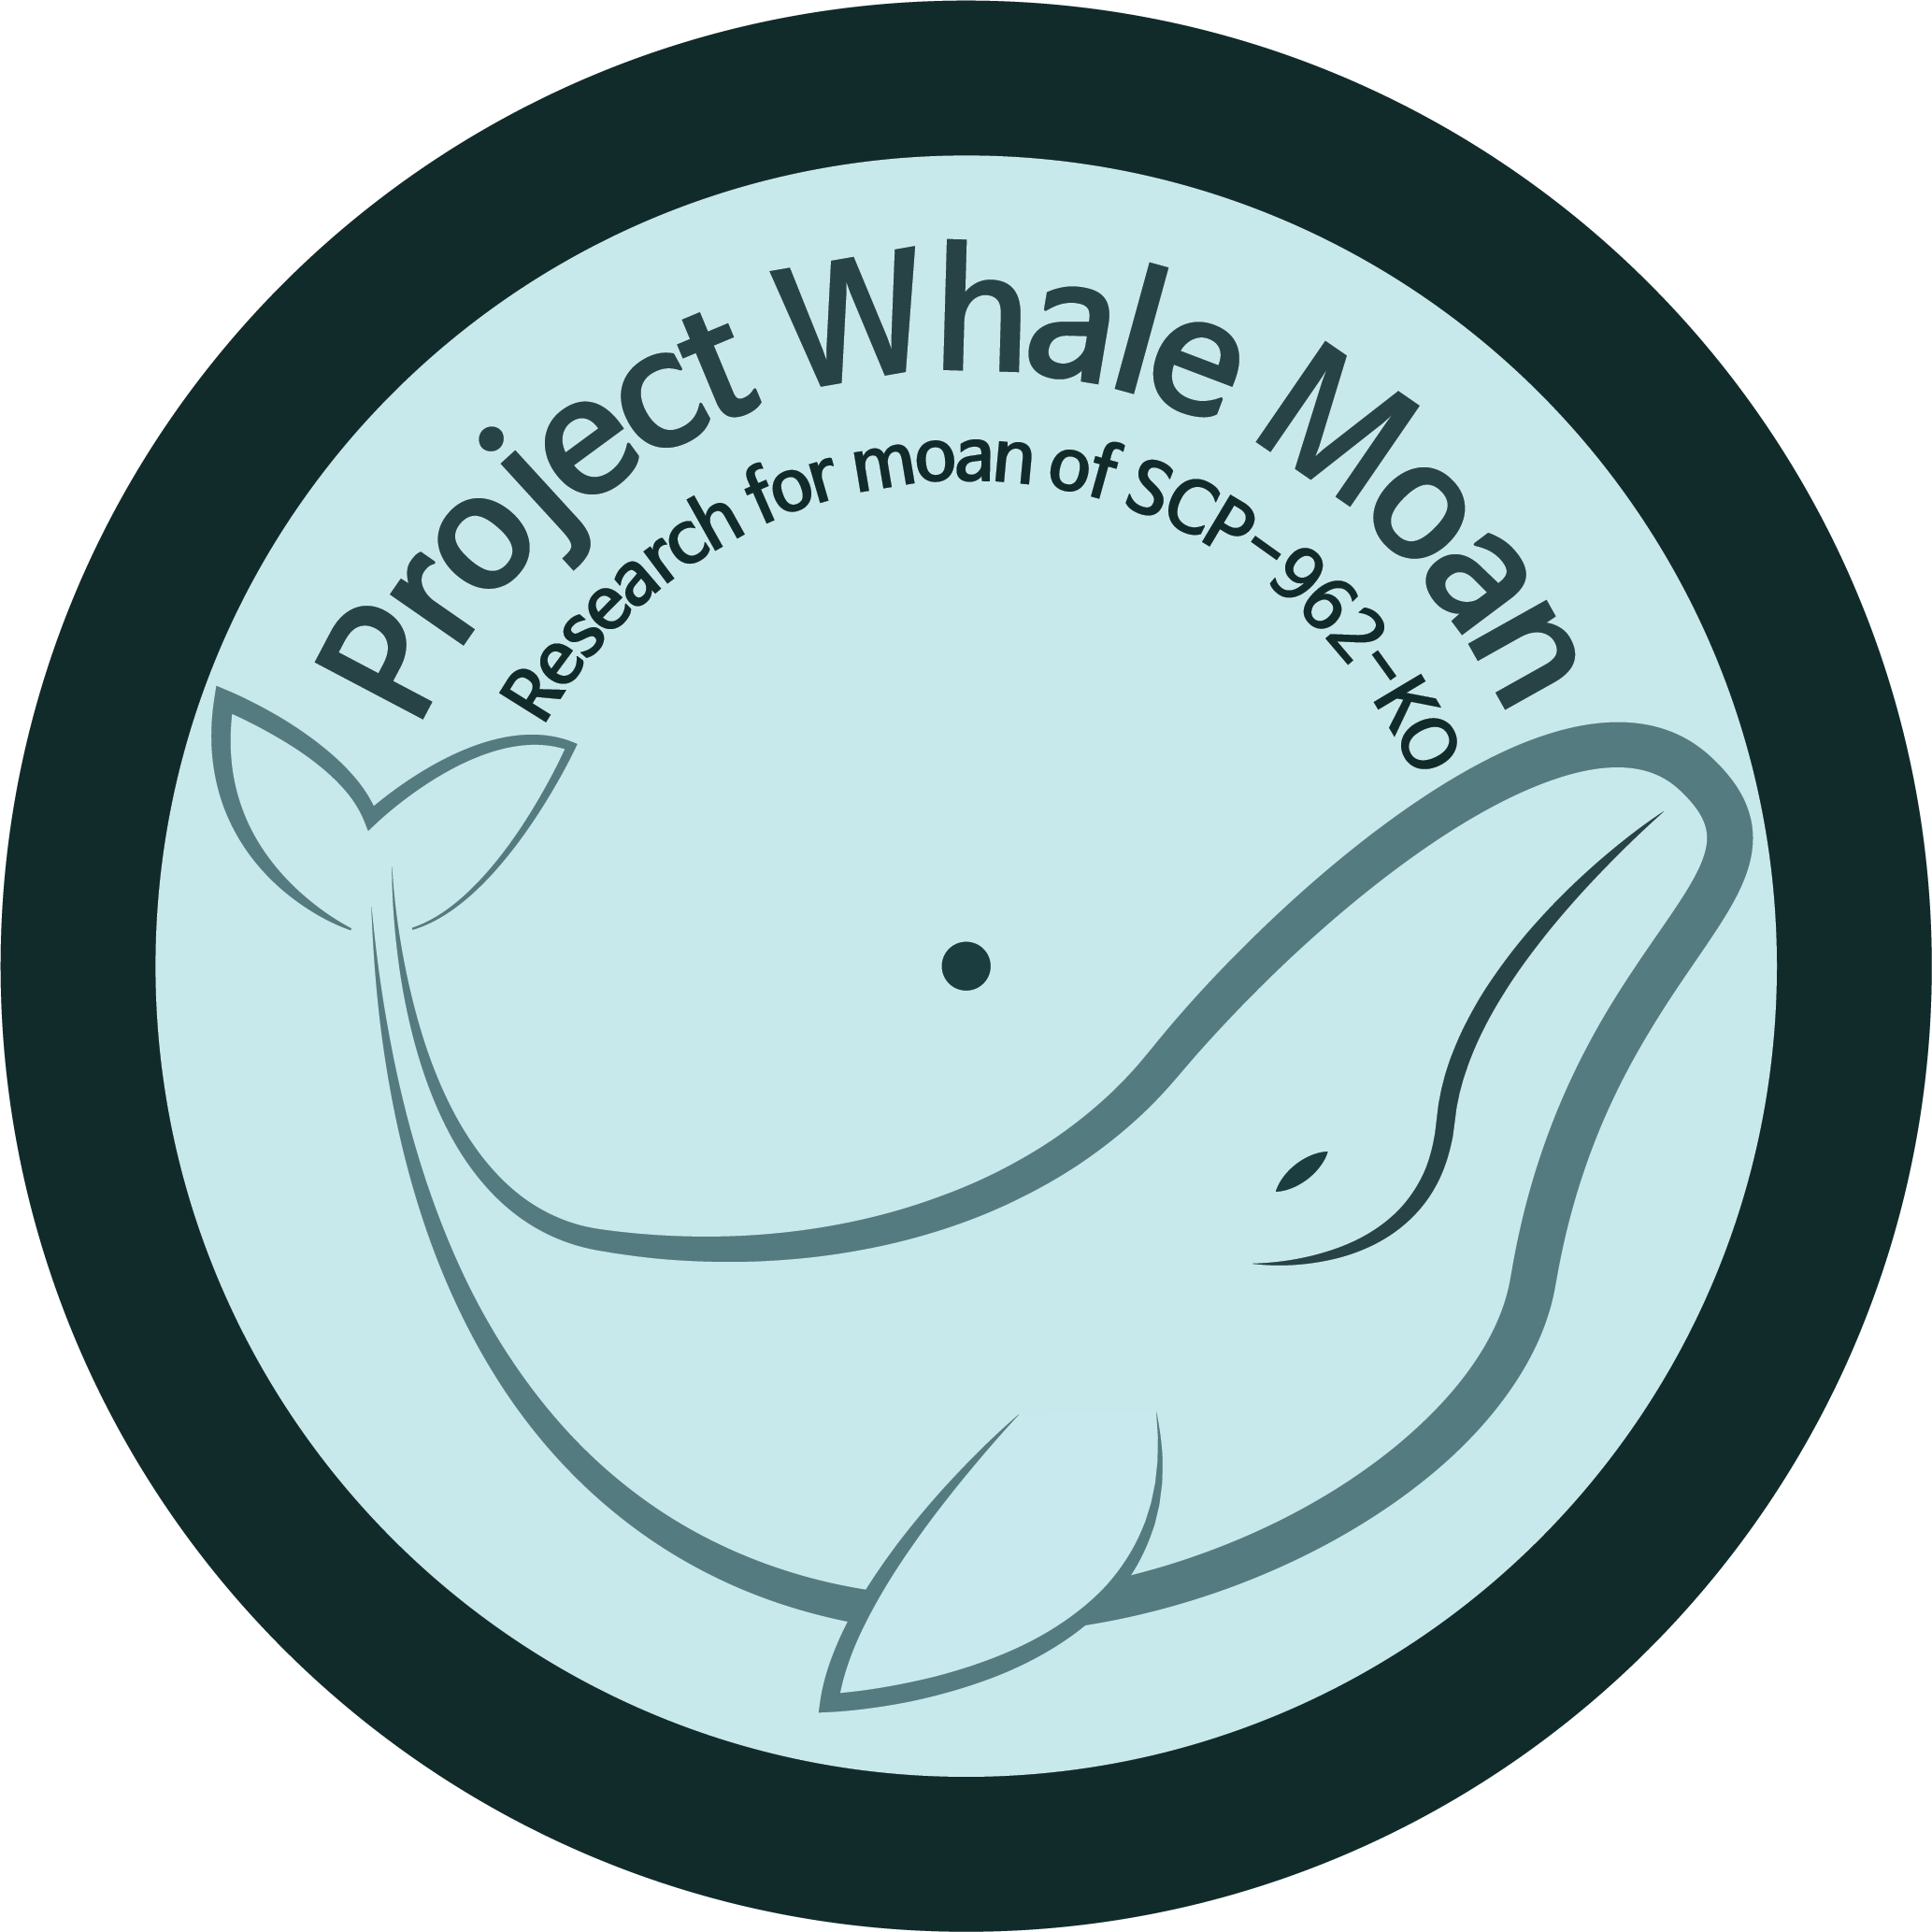 Project_Whale_Moan_Logo.png